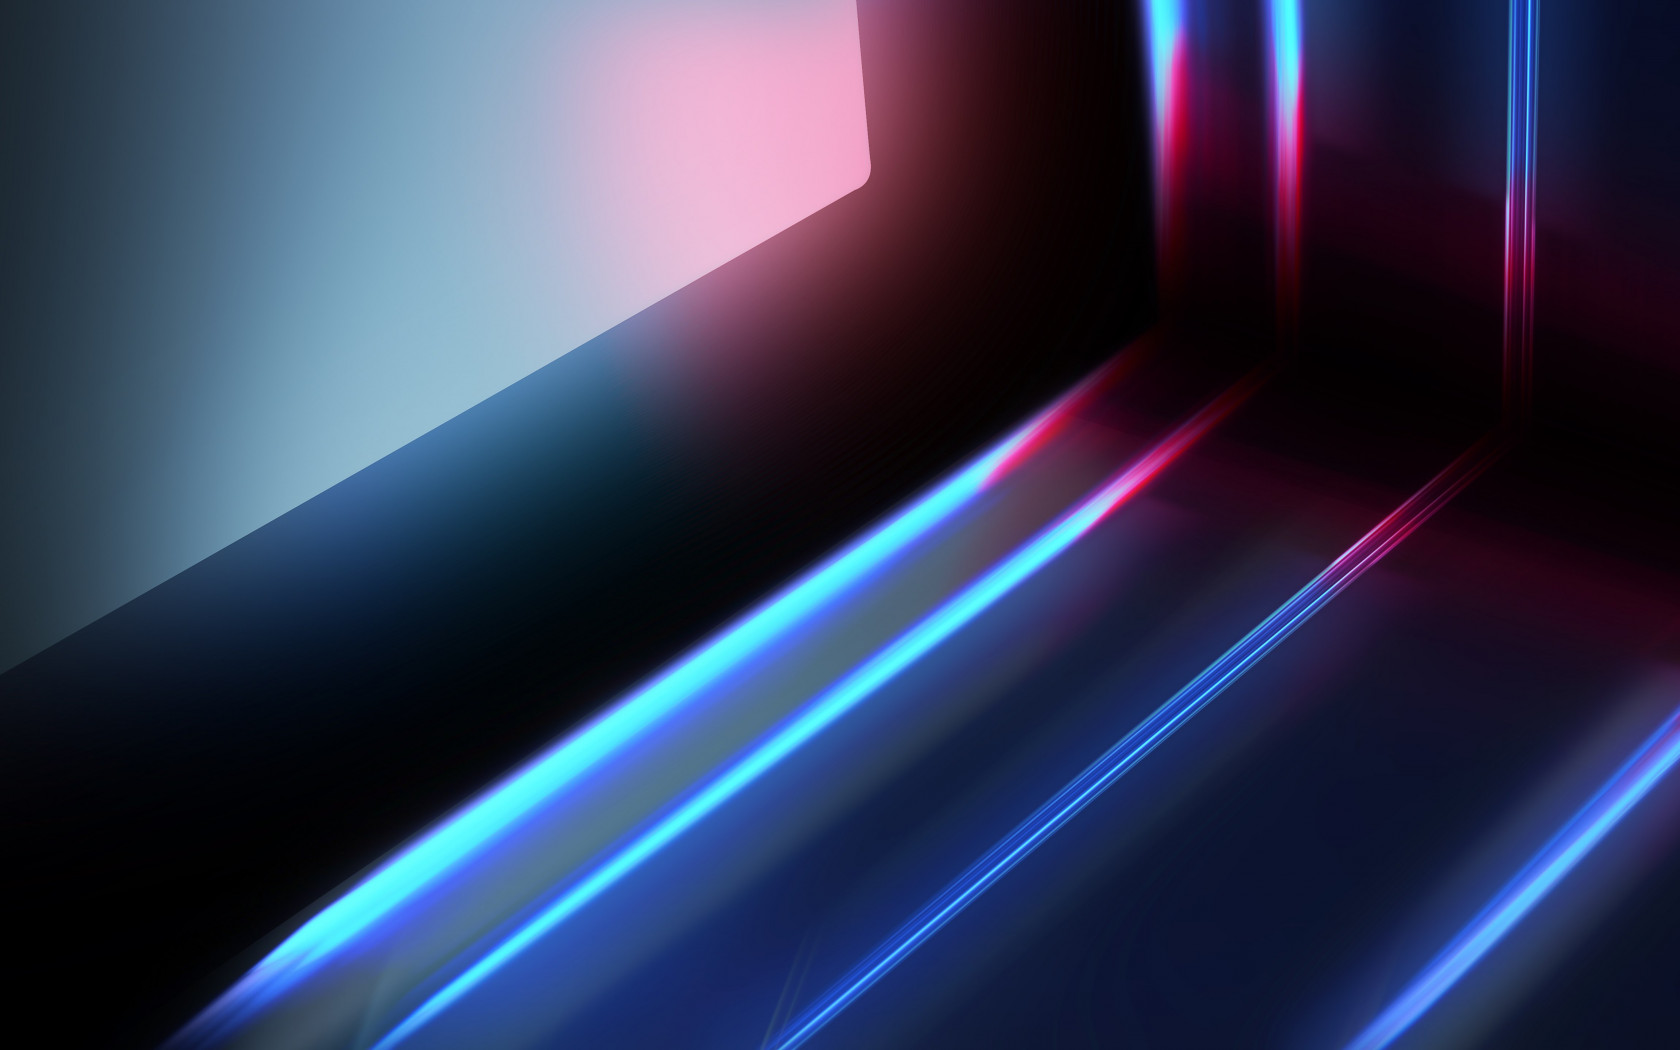 Abstract blue red lights wallpaper 1680x1050